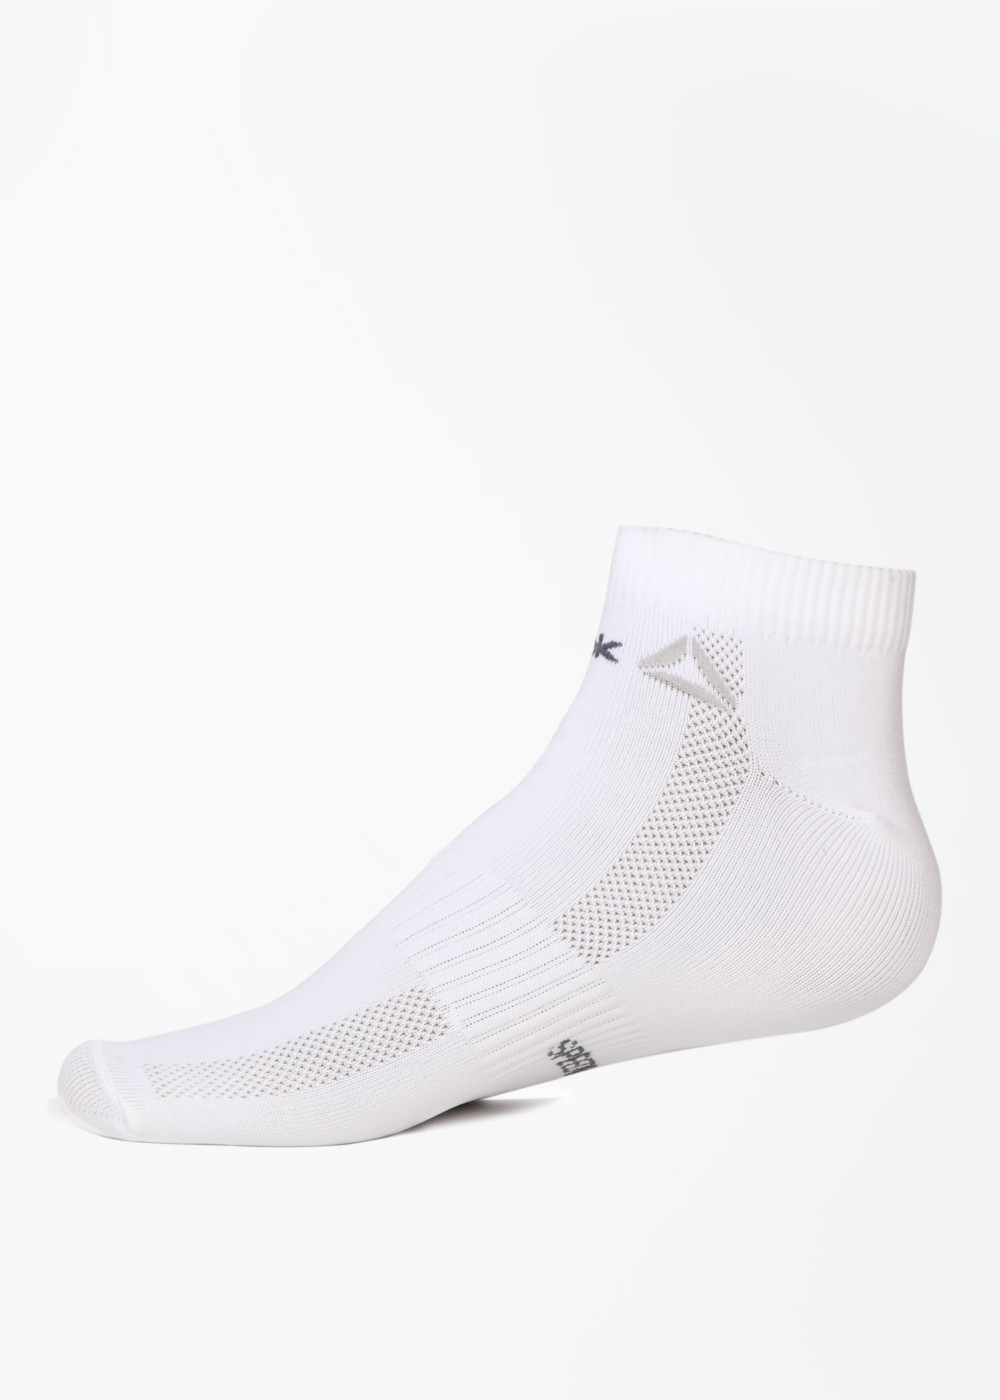 Deals | Mens Socks Reebok,Puma.